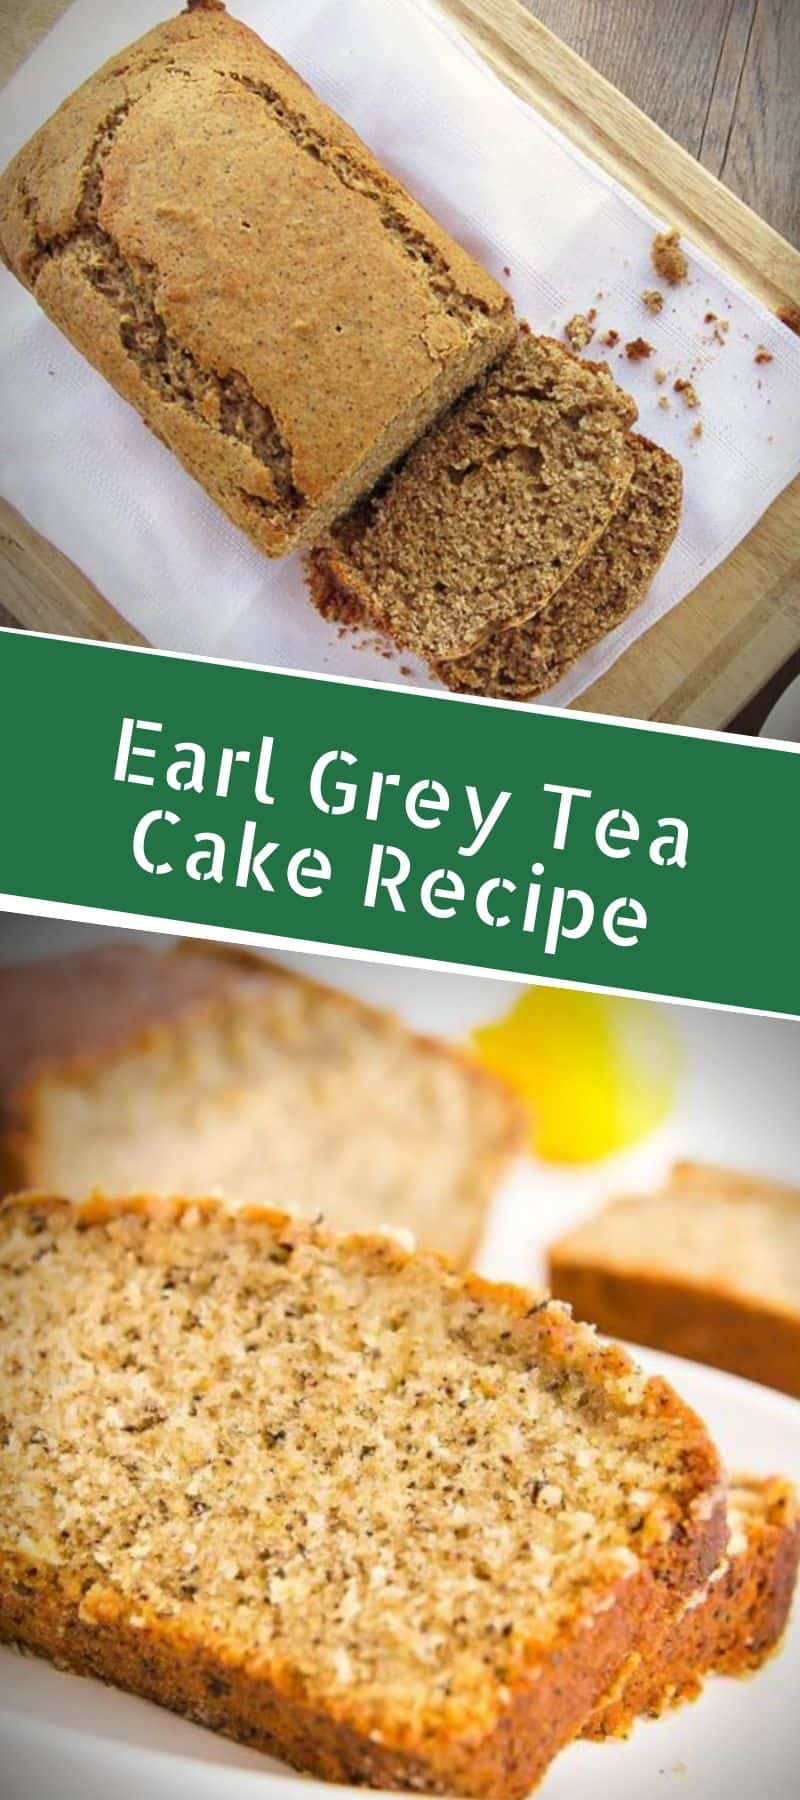 Earl Grey Tea Cake Recipe 3